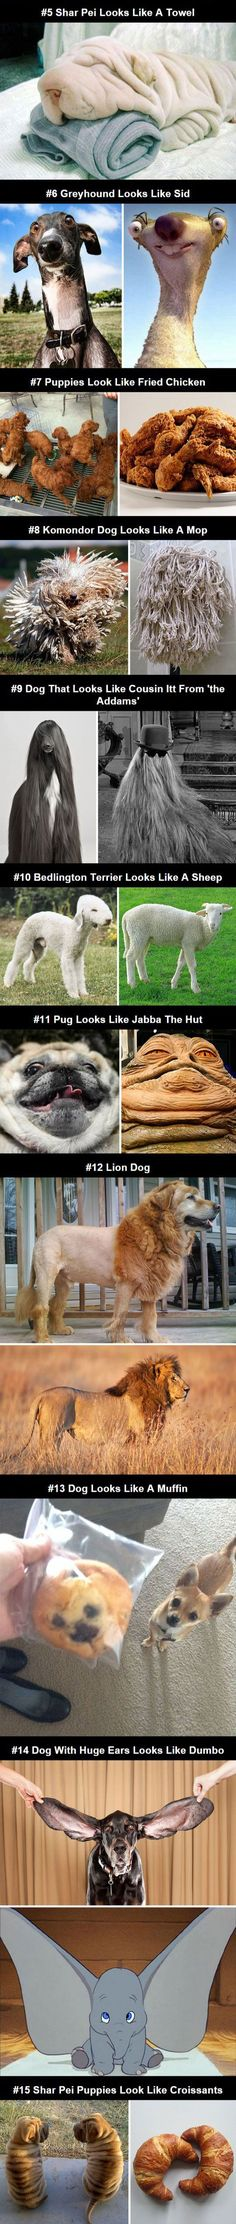 Funny! Dogs That Look Like Other Things